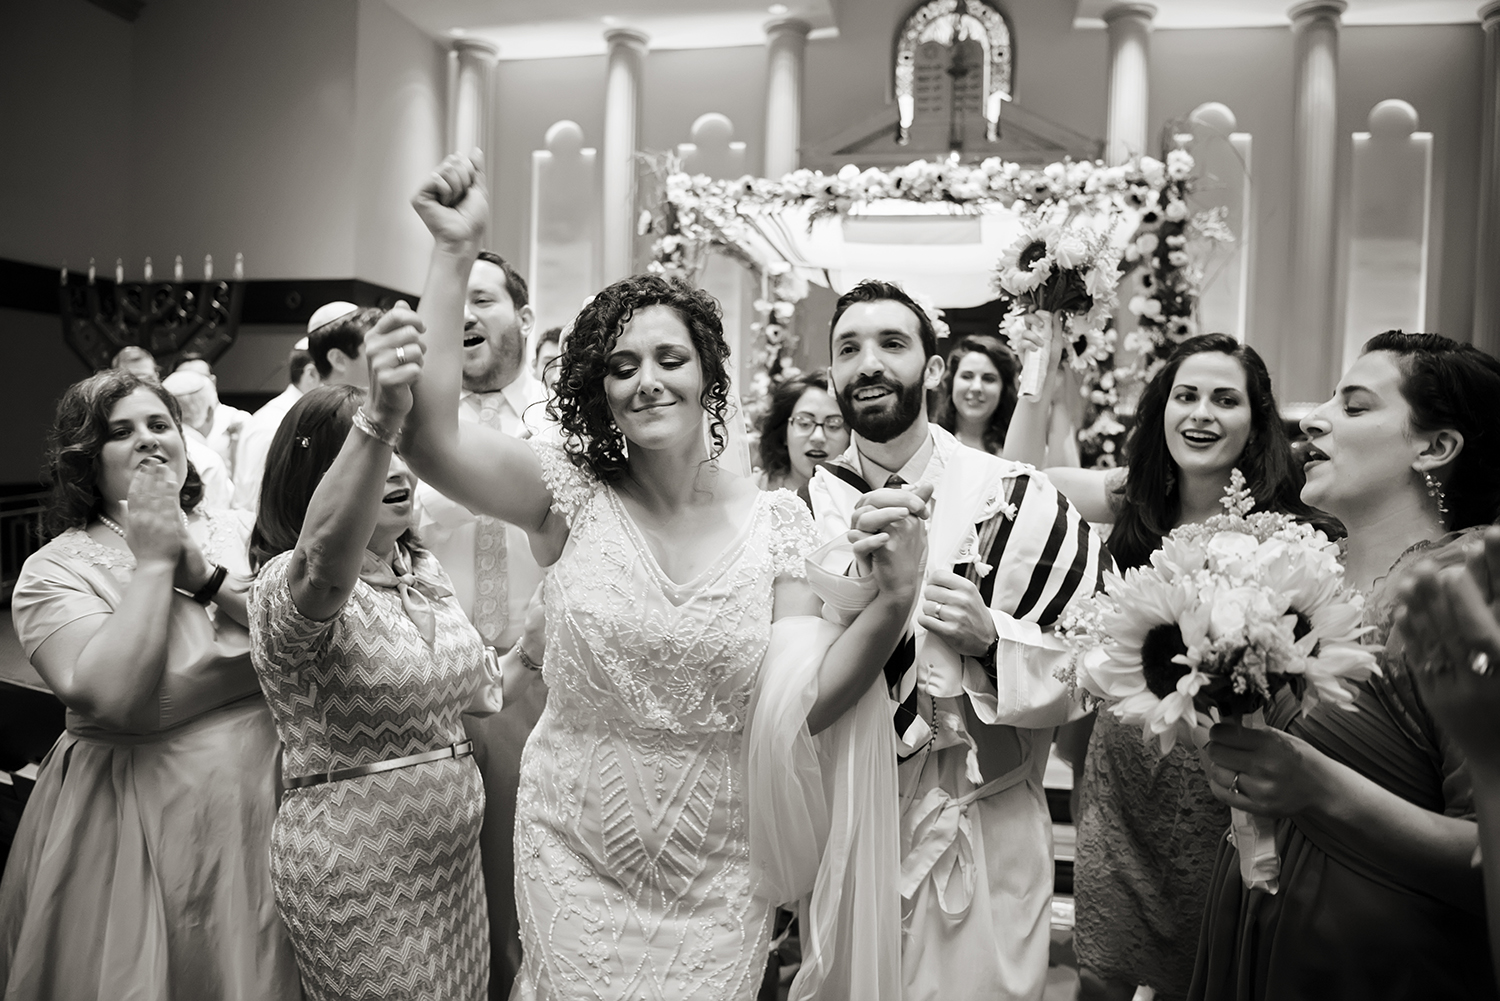 Bride and groom dance down the aisle after completion of their traditional Jewish wedding ceremony at Temple Emanu-El in Closter.